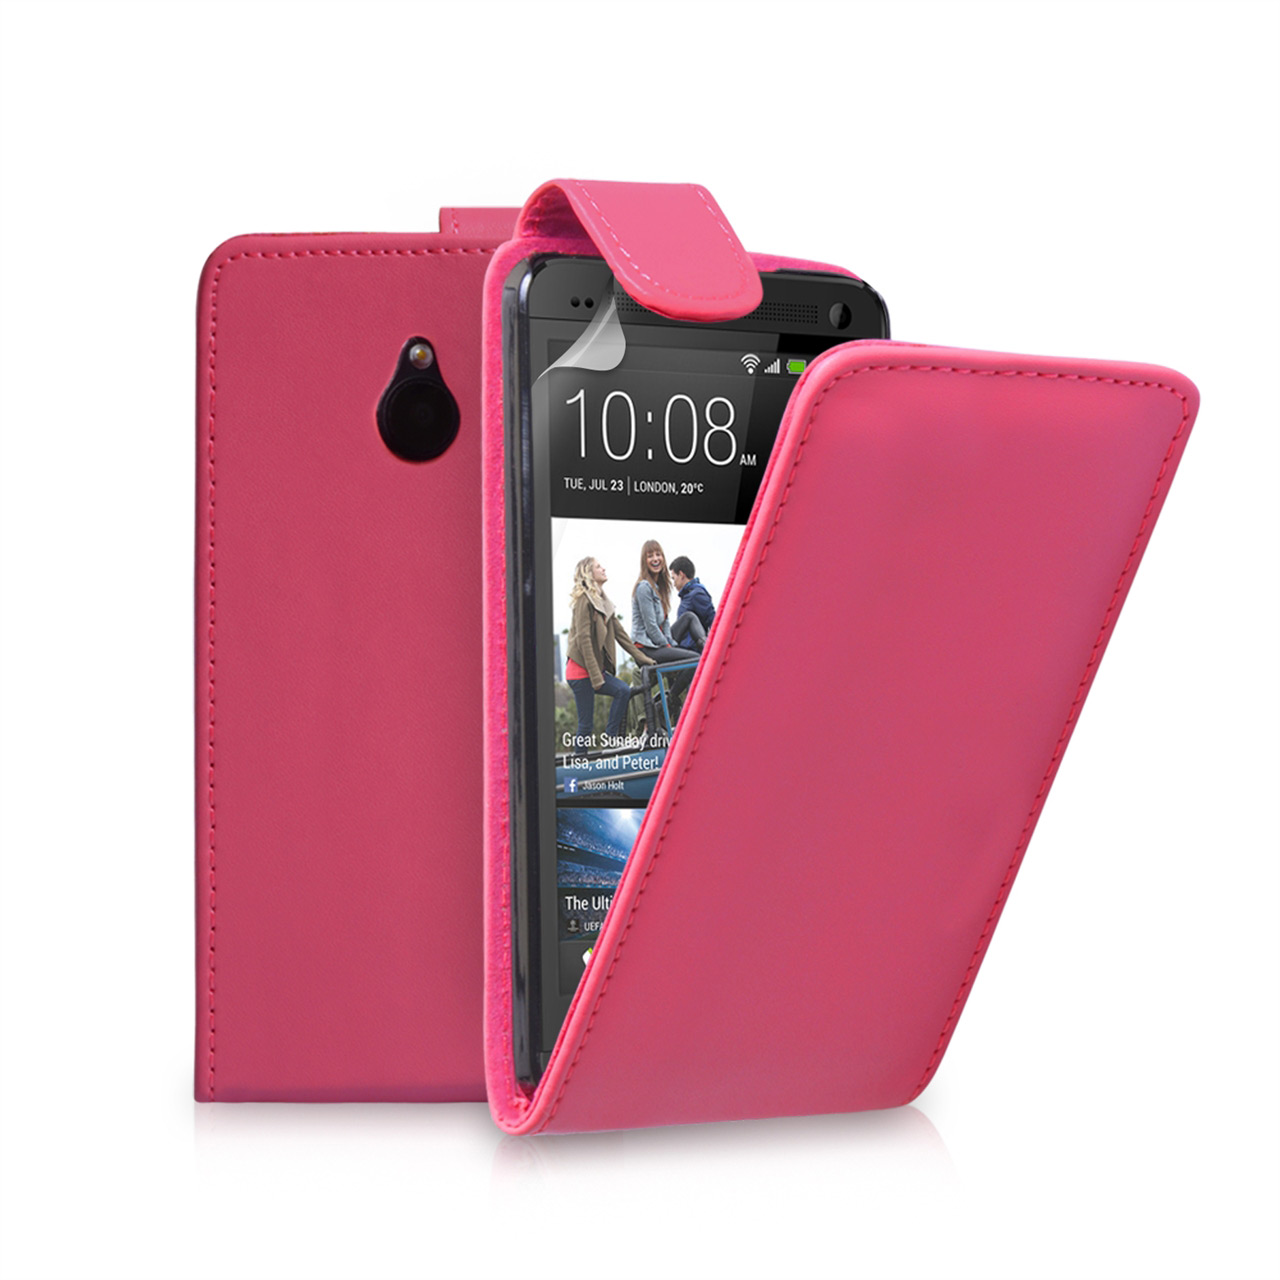 YouSave Accessories HTC ONE Mini Leather-Effect Flip Case - Hot Pink